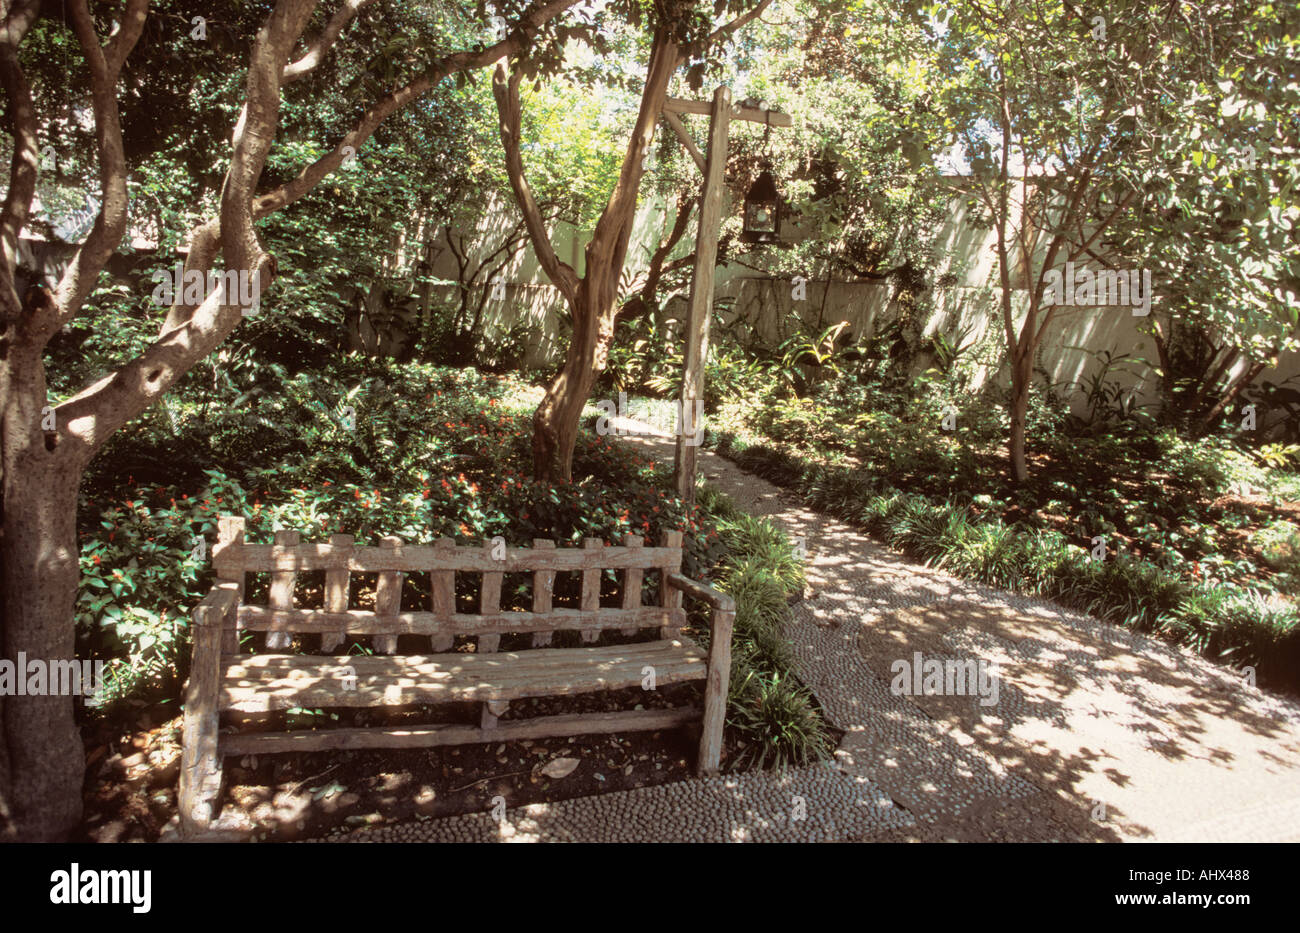 San Antonio Texas USA Spanish Governors palace house Garden seat ...